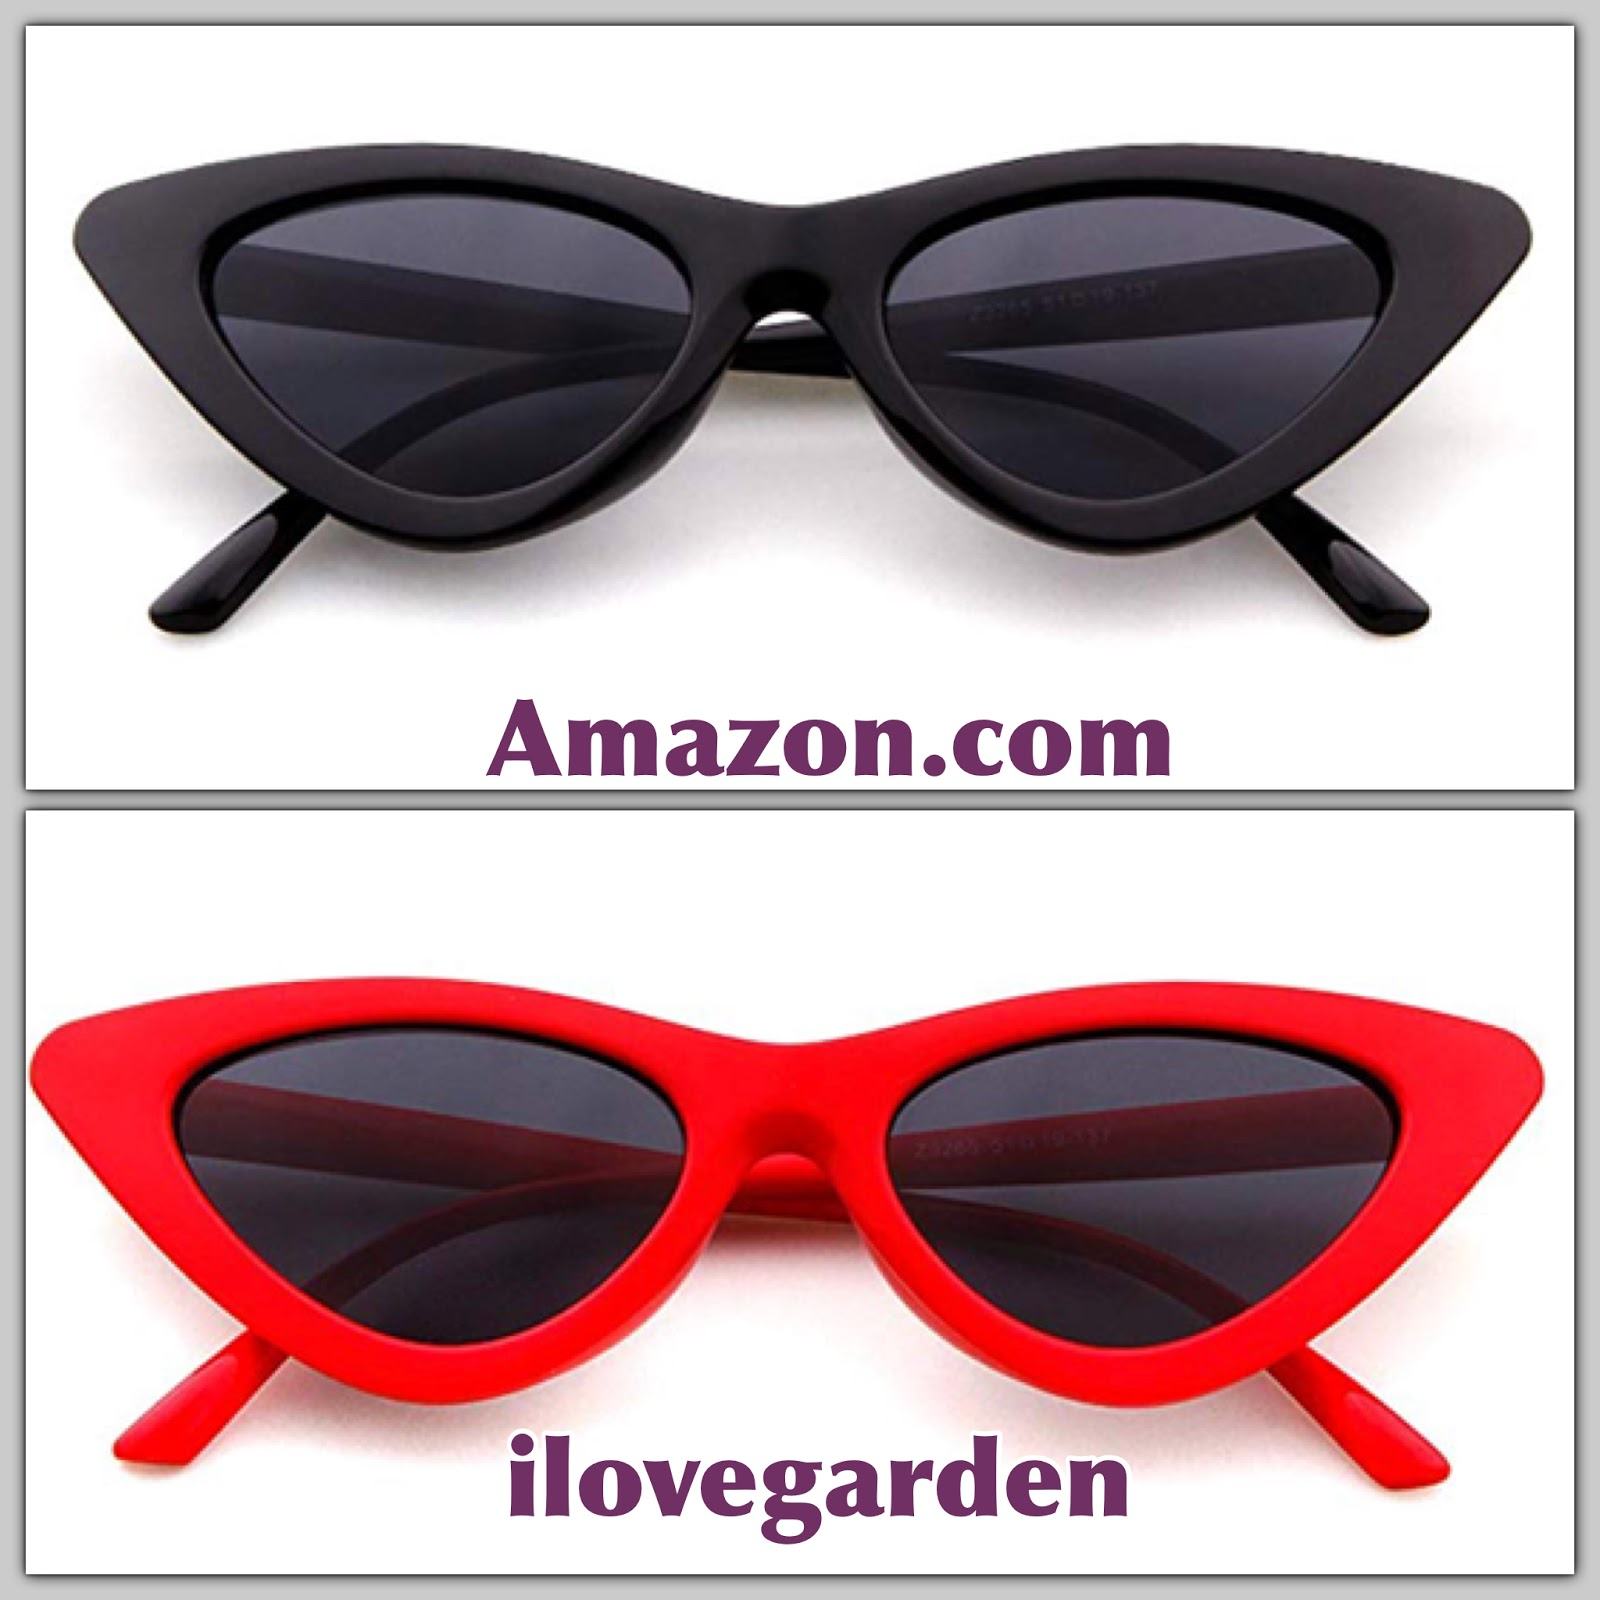 6c3da29155 ... these stylishly chic sunglasses are the must-have accessory to accent  this season s outfits. Made with a plastic based frame